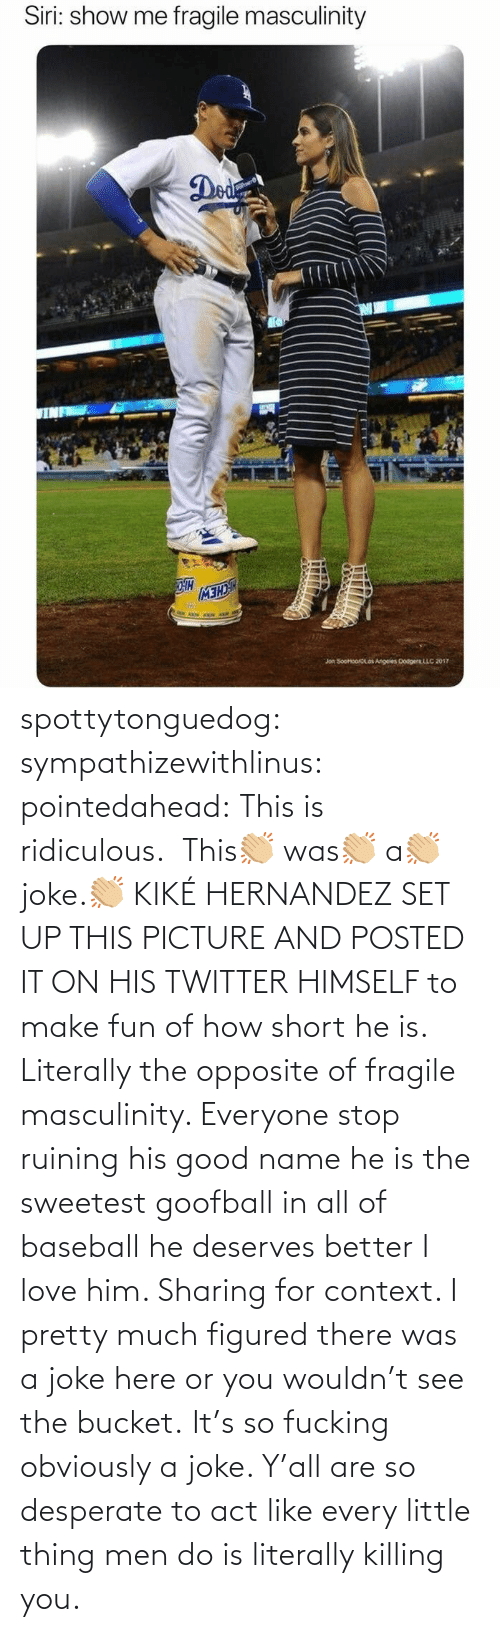 Ÿ˜˜: spottytonguedog:  sympathizewithlinus:   pointedahead: This is ridiculous.  This👏🏼 was👏🏼 a👏🏼 joke.👏🏼 KIKÉ HERNANDEZ SET UP THIS PICTURE AND POSTED IT ON HIS TWITTER HIMSELF to make fun of how short he is. Literally the opposite of fragile masculinity. Everyone stop ruining his good name he is the sweetest goofball in all of baseball he deserves better I love him.    Sharing for context. I pretty much figured there was a joke here or you wouldn't see the bucket.    It's so fucking obviously a joke. Y'all are so desperate to act like every little thing men do is literally killing you.